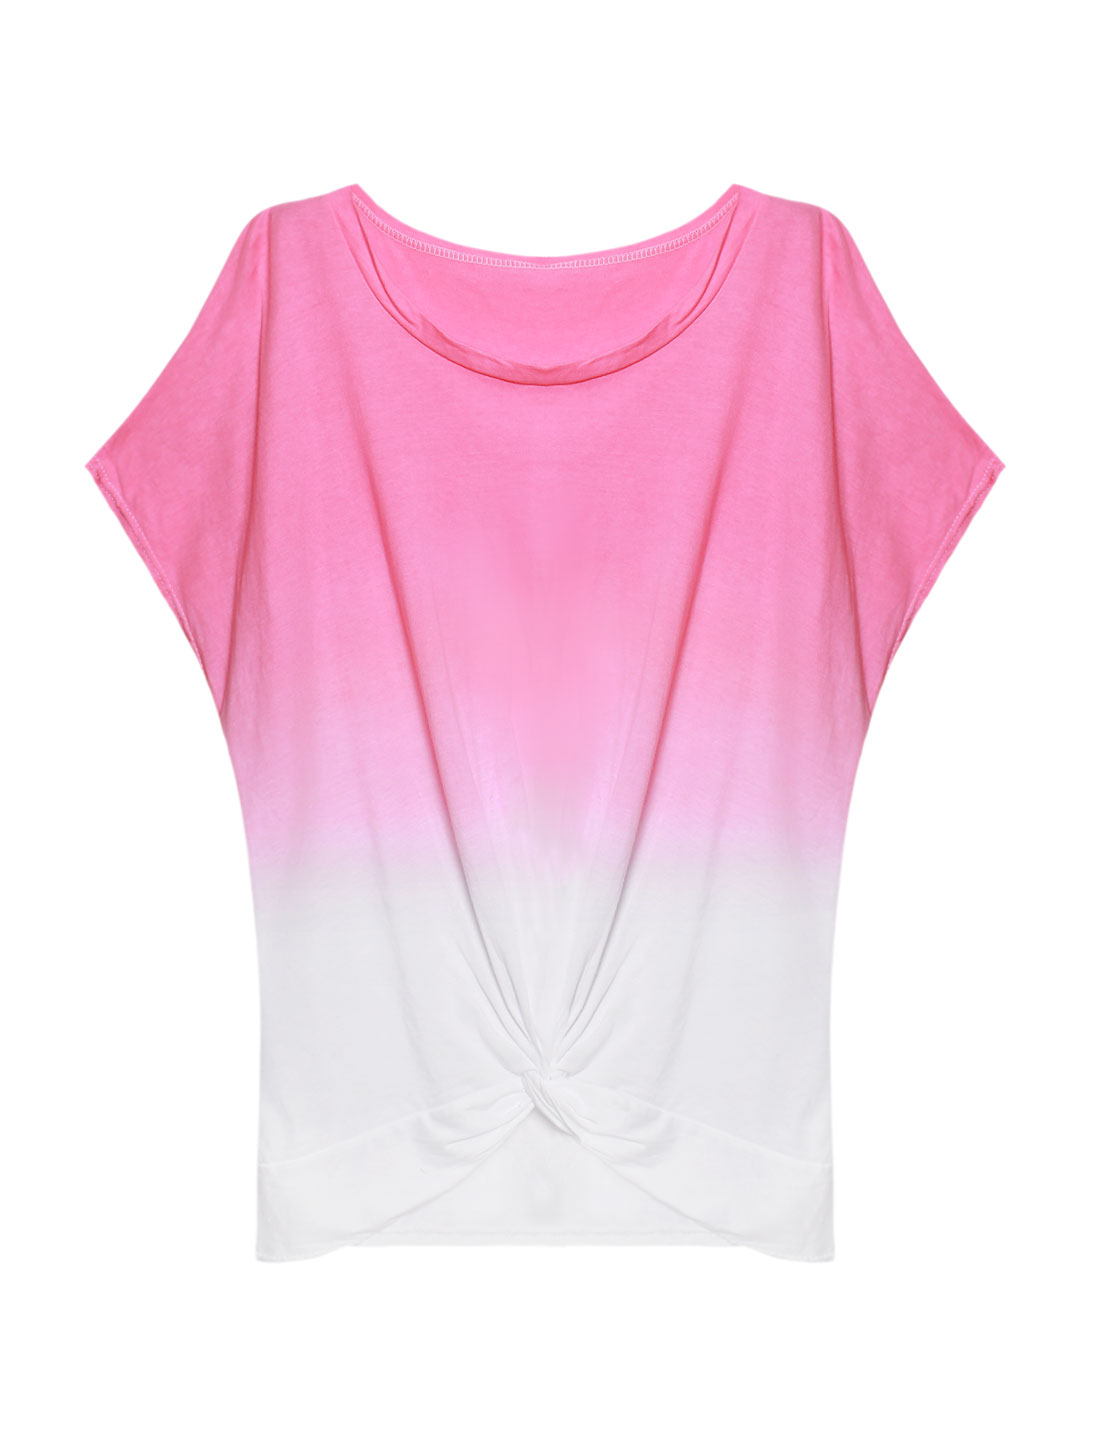 Women Hi-Lo Hem Dip-Dyed Knotted Tunic Batwing T Shirt Pink S